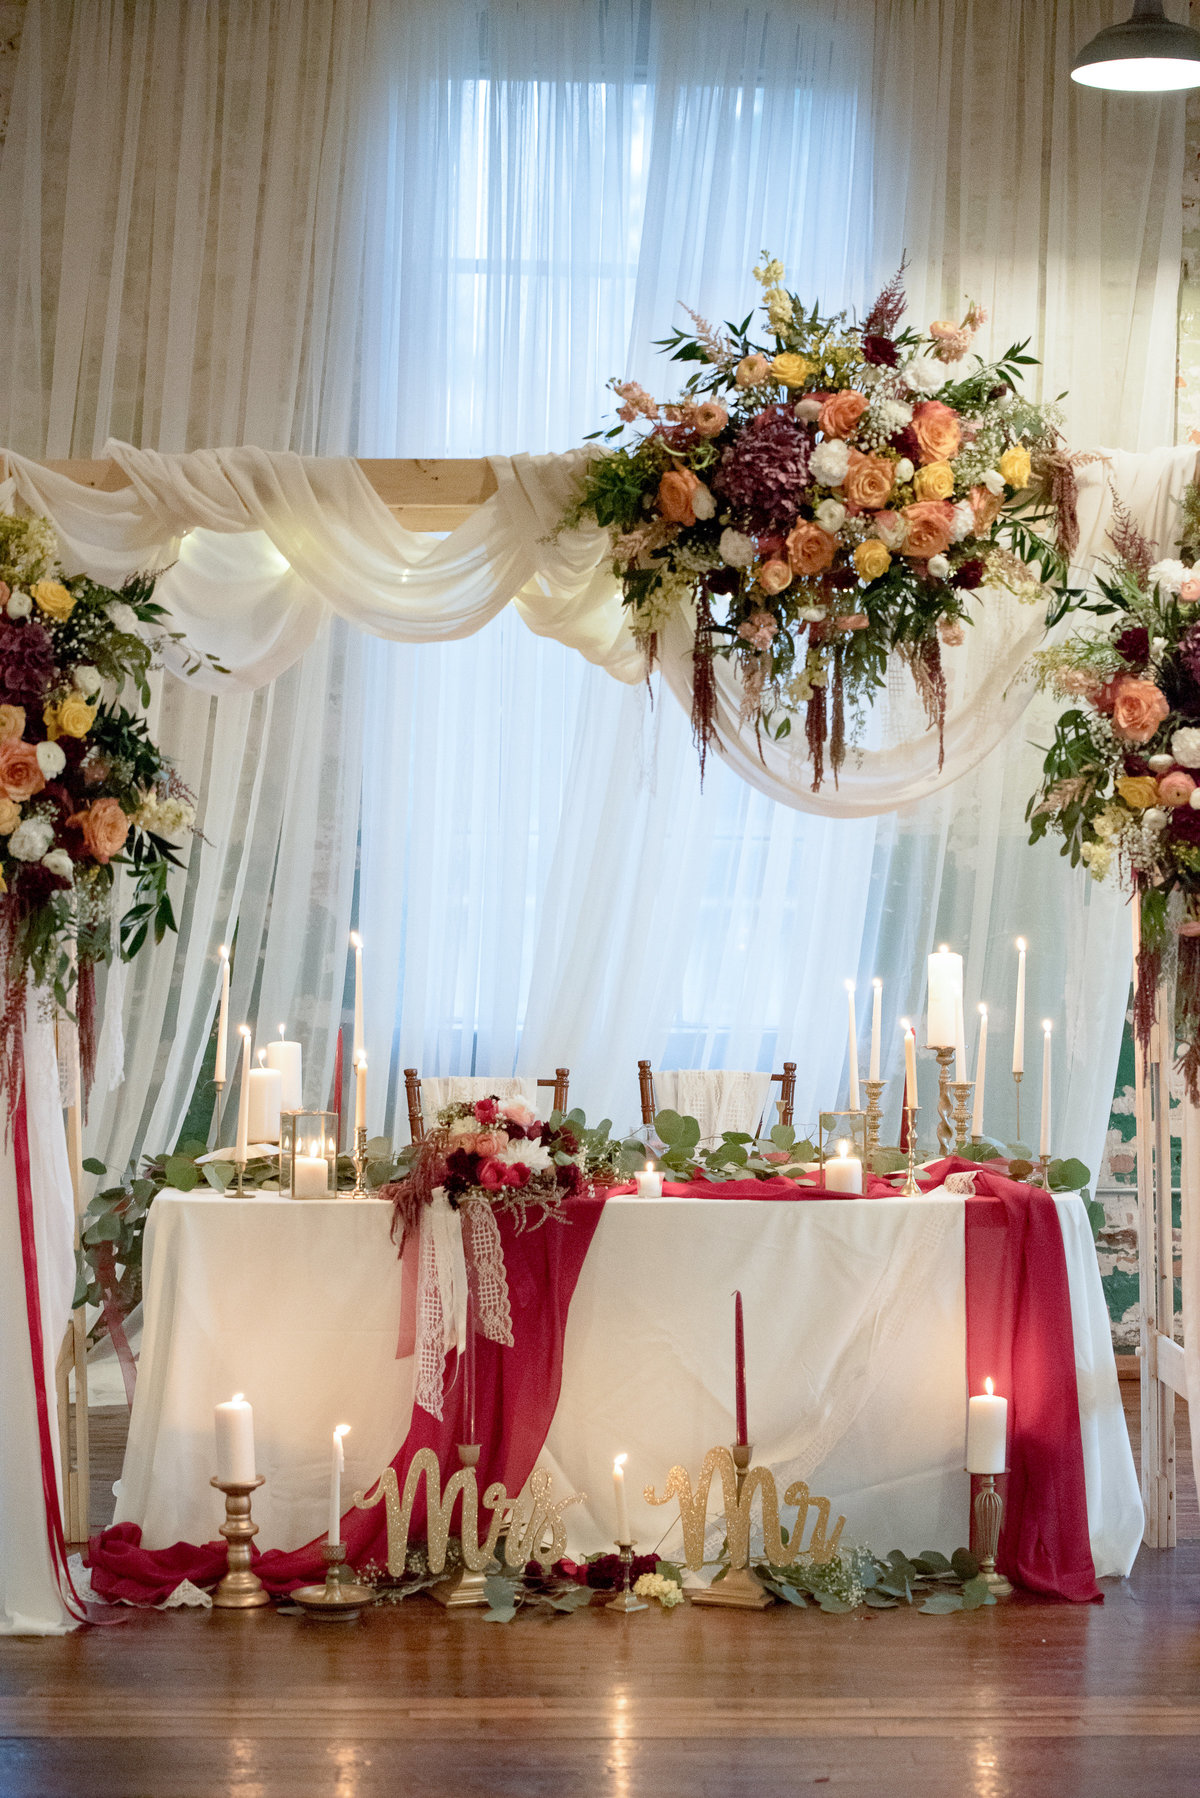 Chuppah with Flowers